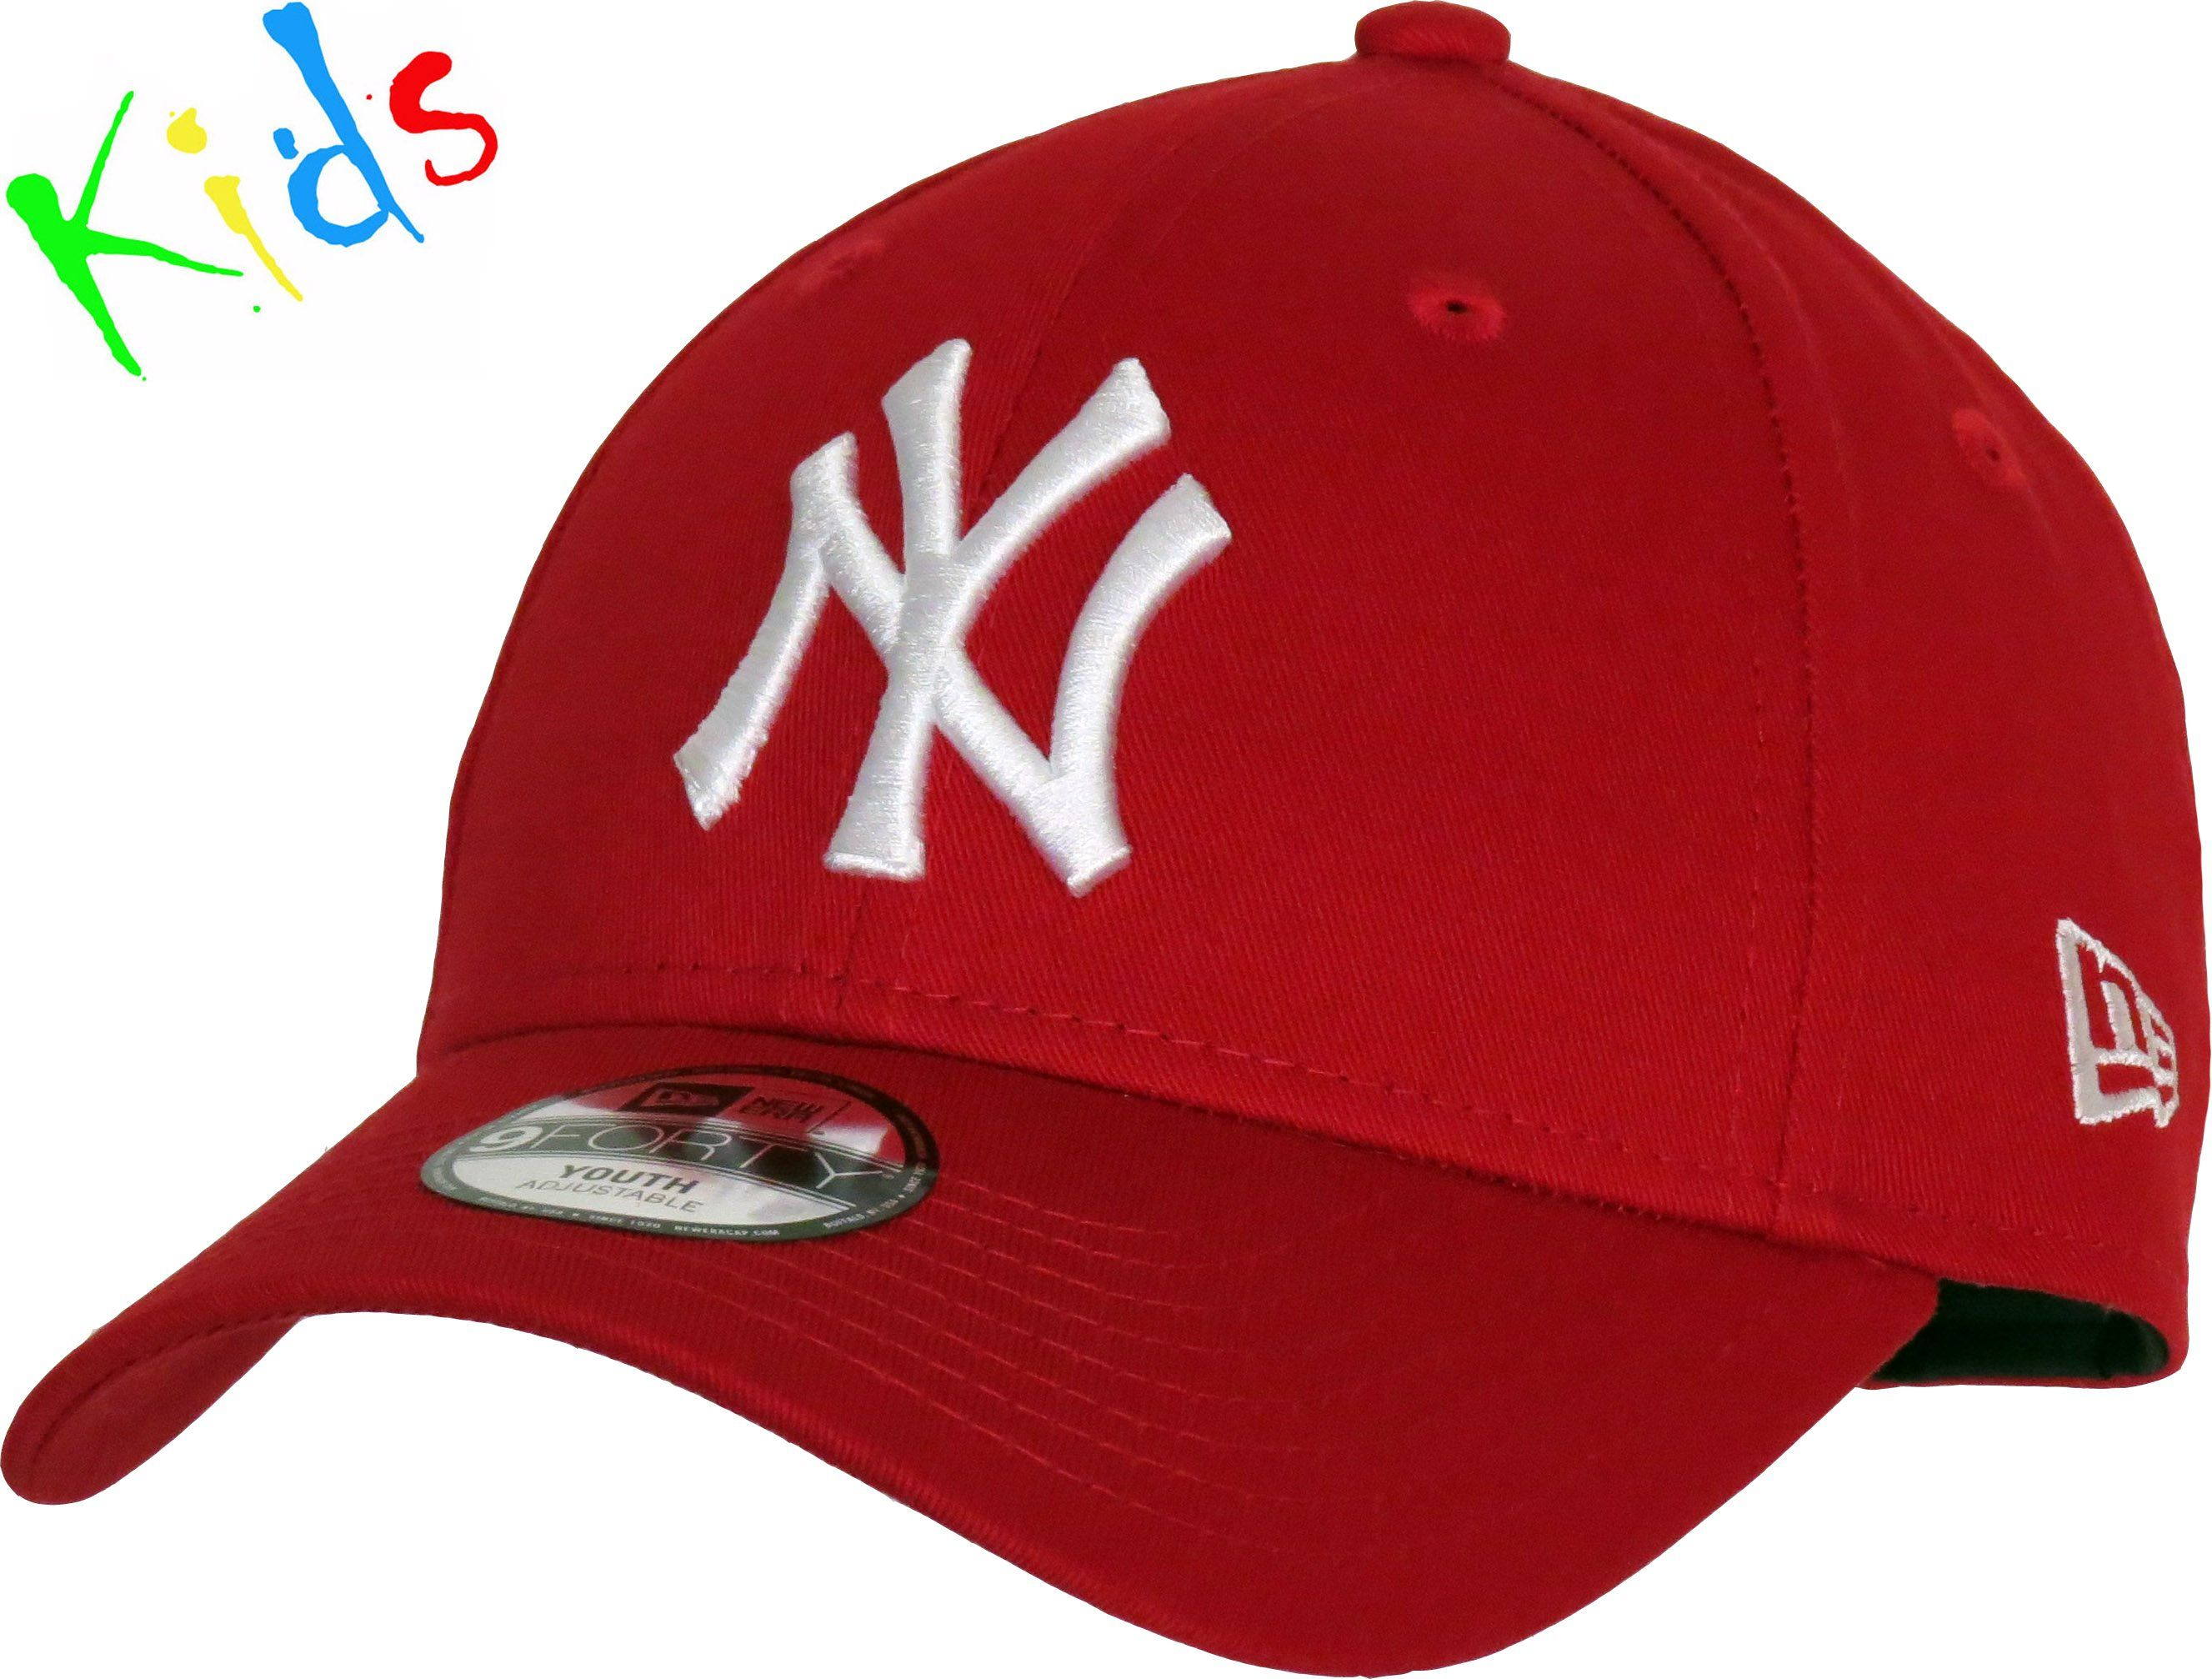 5562929adb0 NY Yankees New Era 940 Kids Scarlet Baseball Cap (Age 4 - 10 Years ...